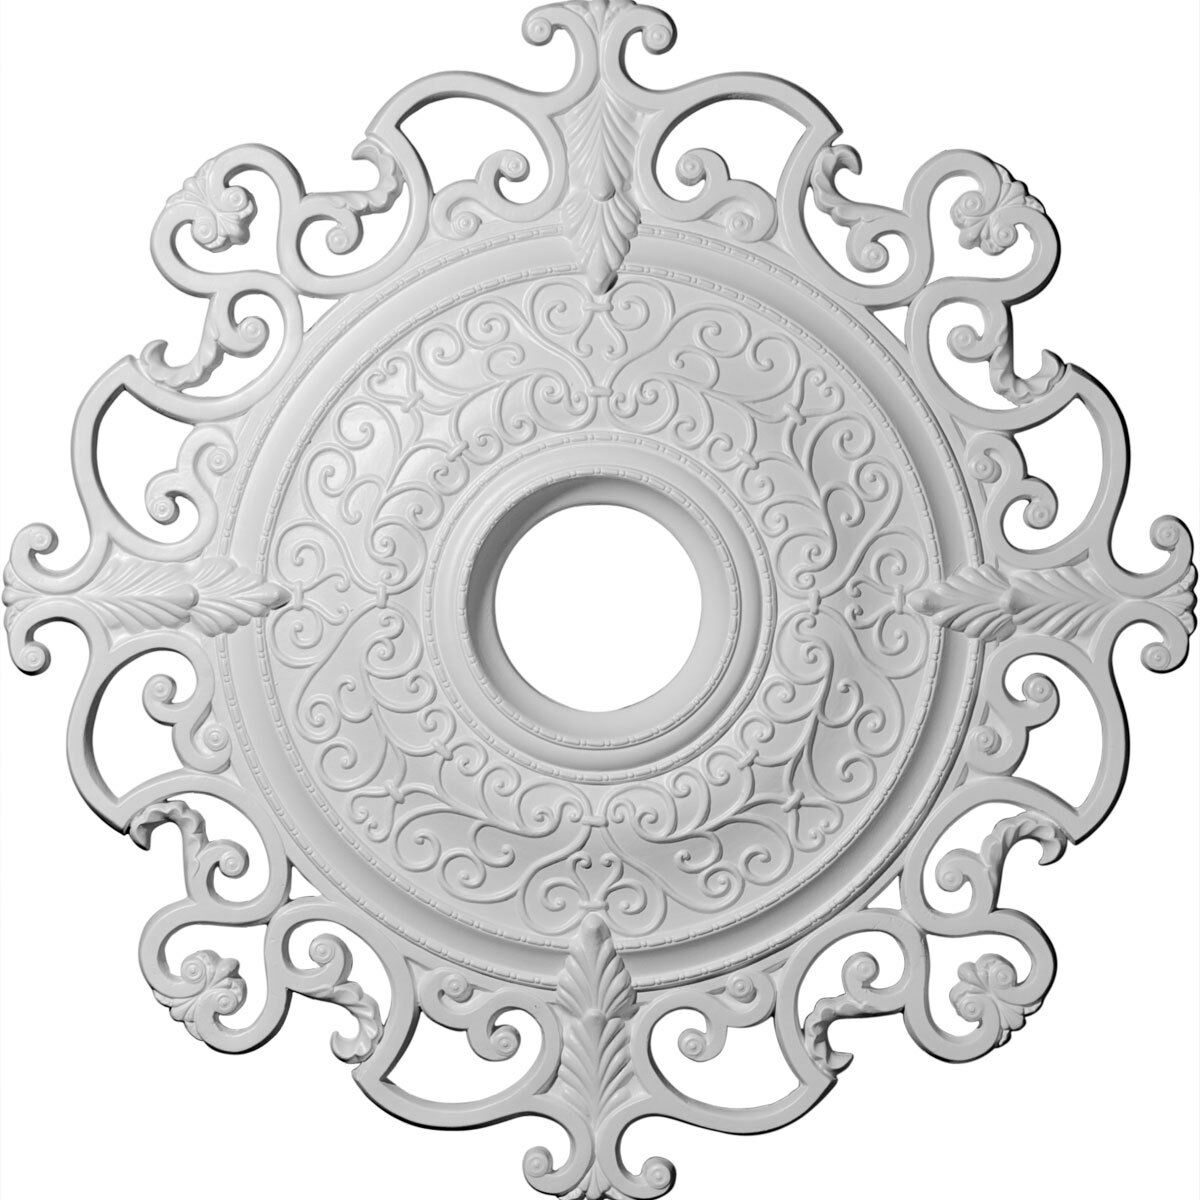 38 3 8 OD x 6 1 4 ID x 2 7 8 P Ceiling Medallion (Fits Canopies up to 8 1 4 )